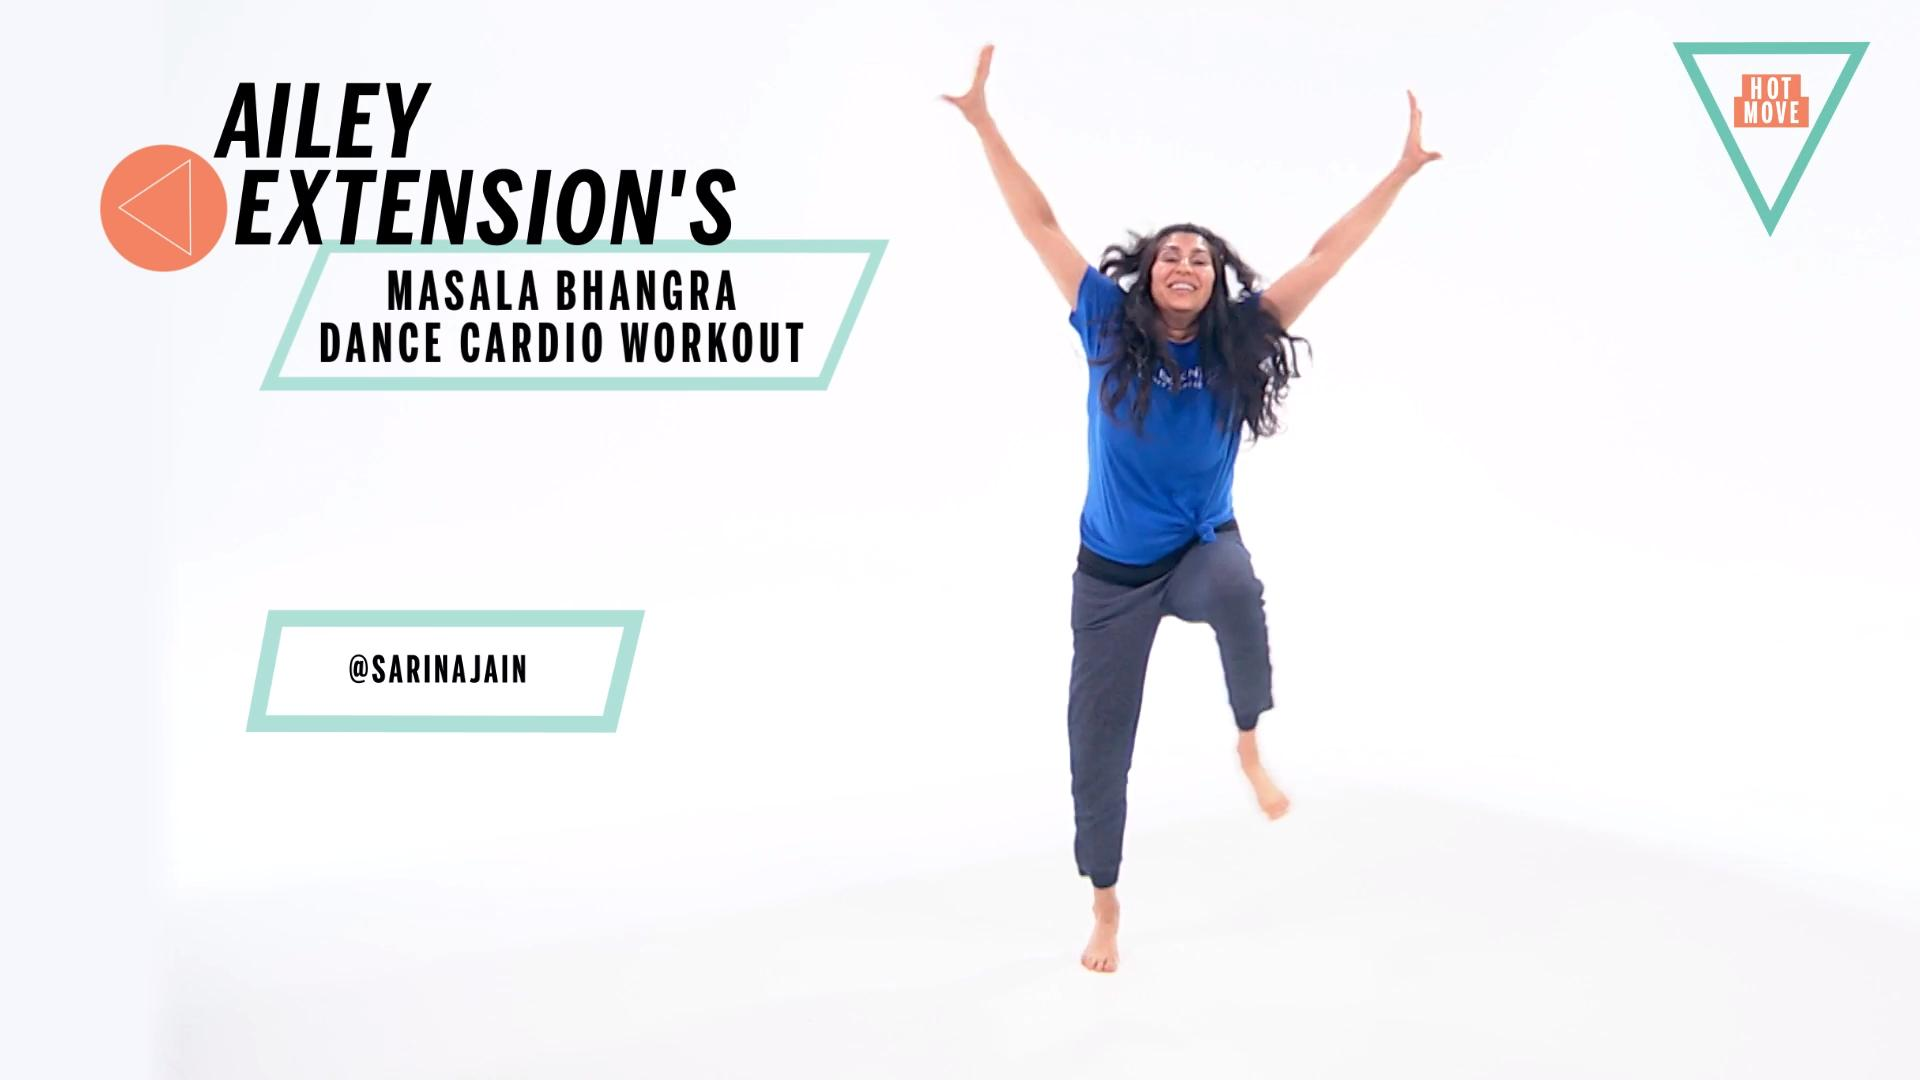 These 5 Heart-Pumping Indian Dance Moves Make a Great Cardio Workout